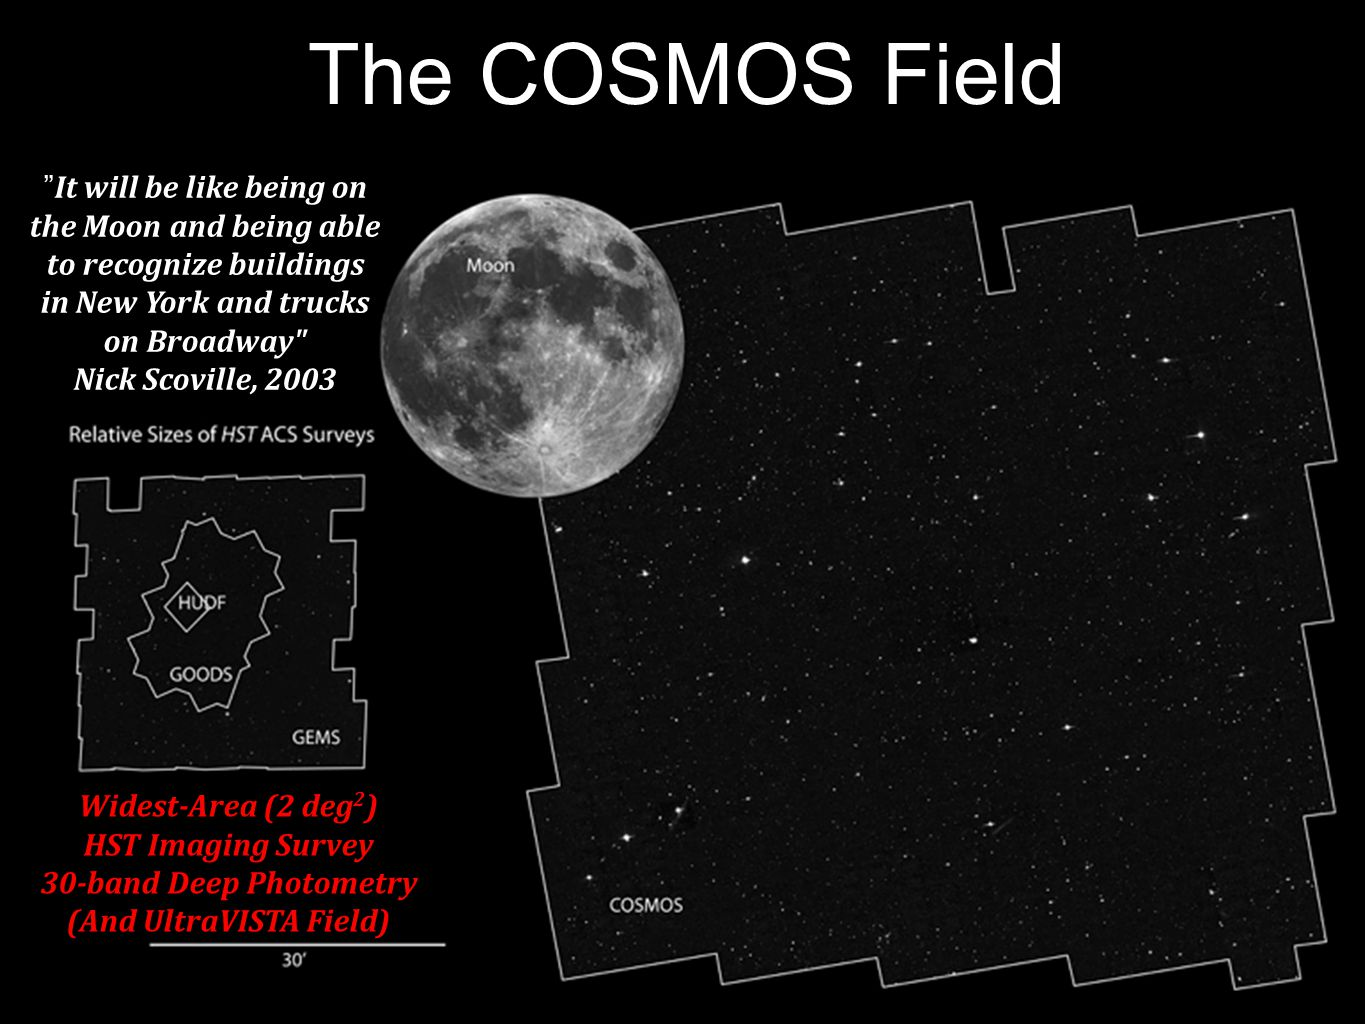 It will be like being on the Moon and being able to recognize buildings in New York and trucks on Broadway Nick Scoville, 2003 The COSMOS Field Widest-Area (2 deg 2 ) HST Imaging Survey 30-band Deep Photometry (And UltraVISTA Field)